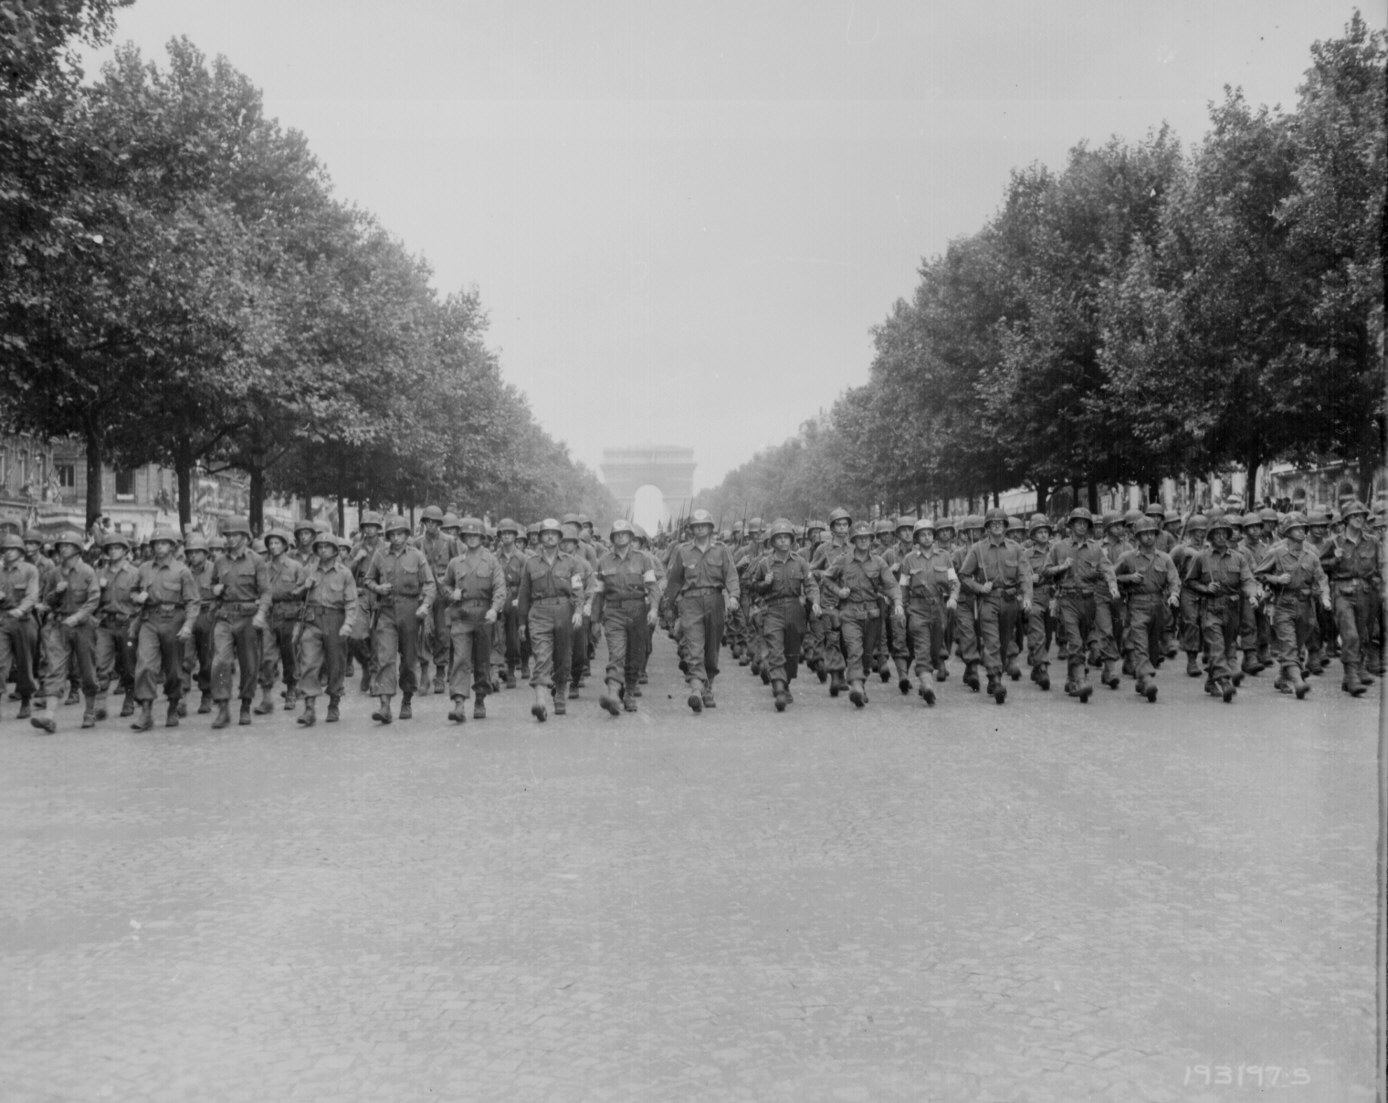 [6.+American+troops+of+the+28th+Infantry+Div.+march+down+the+Champs+Elysees,+Paris,+in+the+]